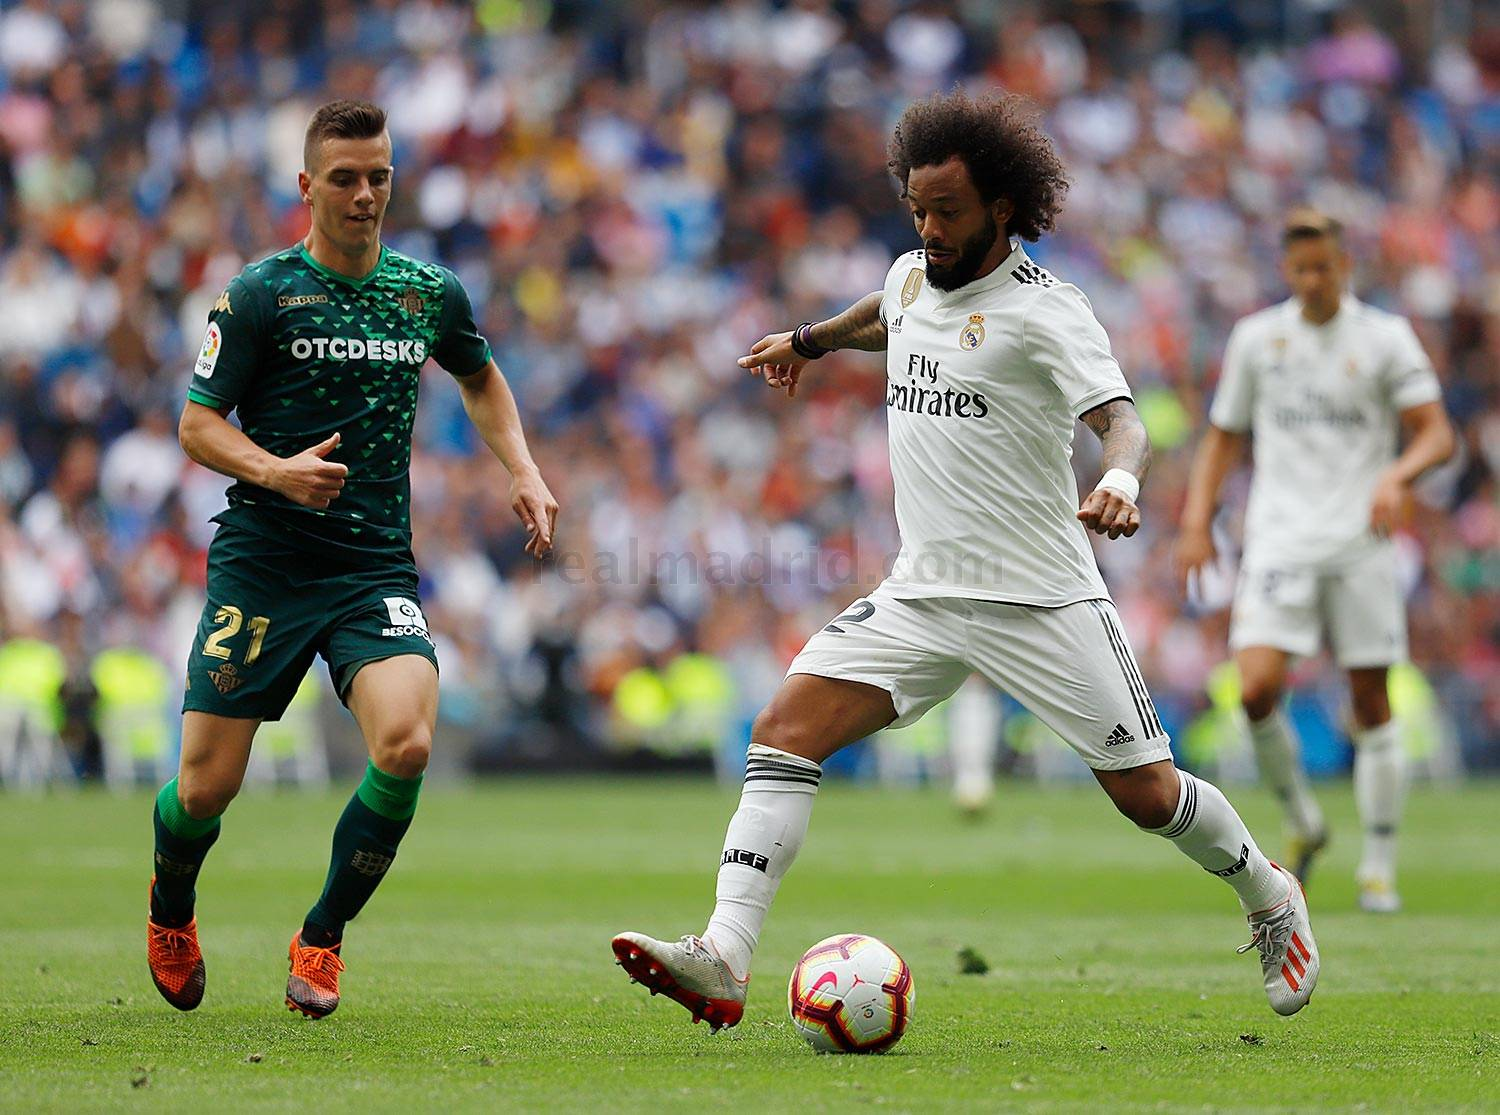 Real Madrid - Real Madrid - Betis - 19-05-2019